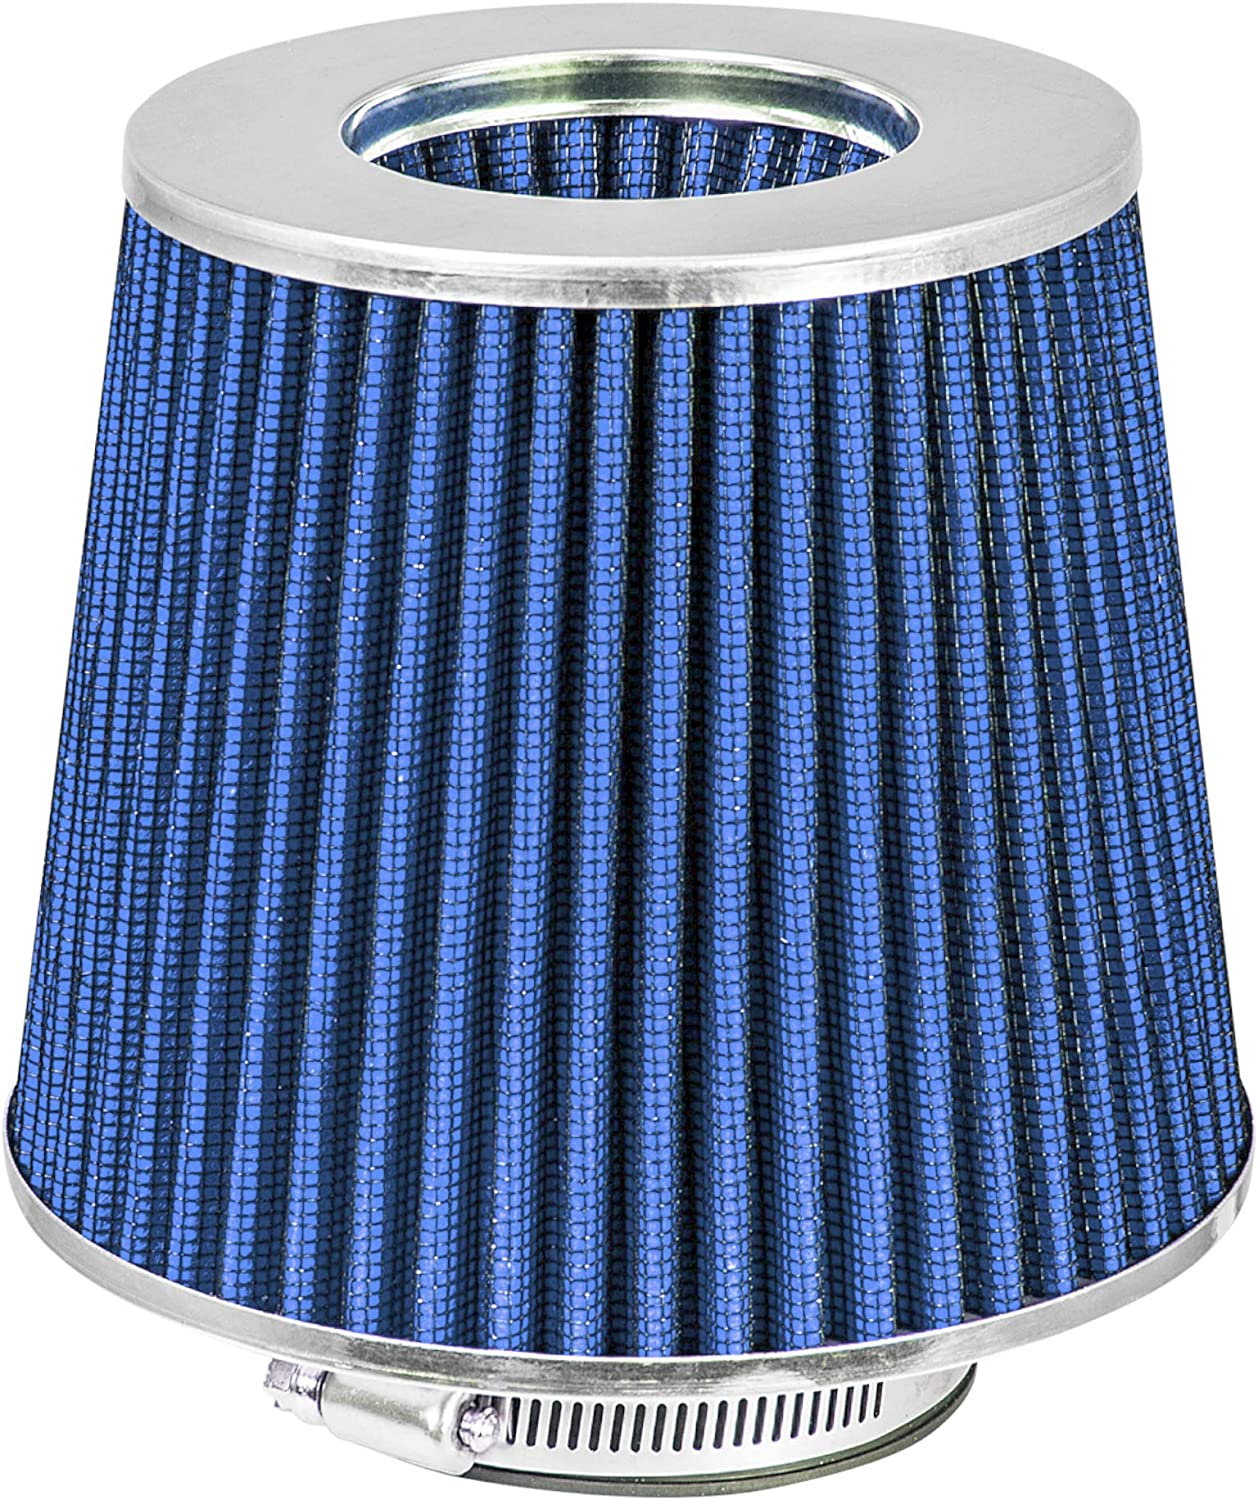 Mortar Aftermarket Auto Air Filter Replacement - Car Enthusiast